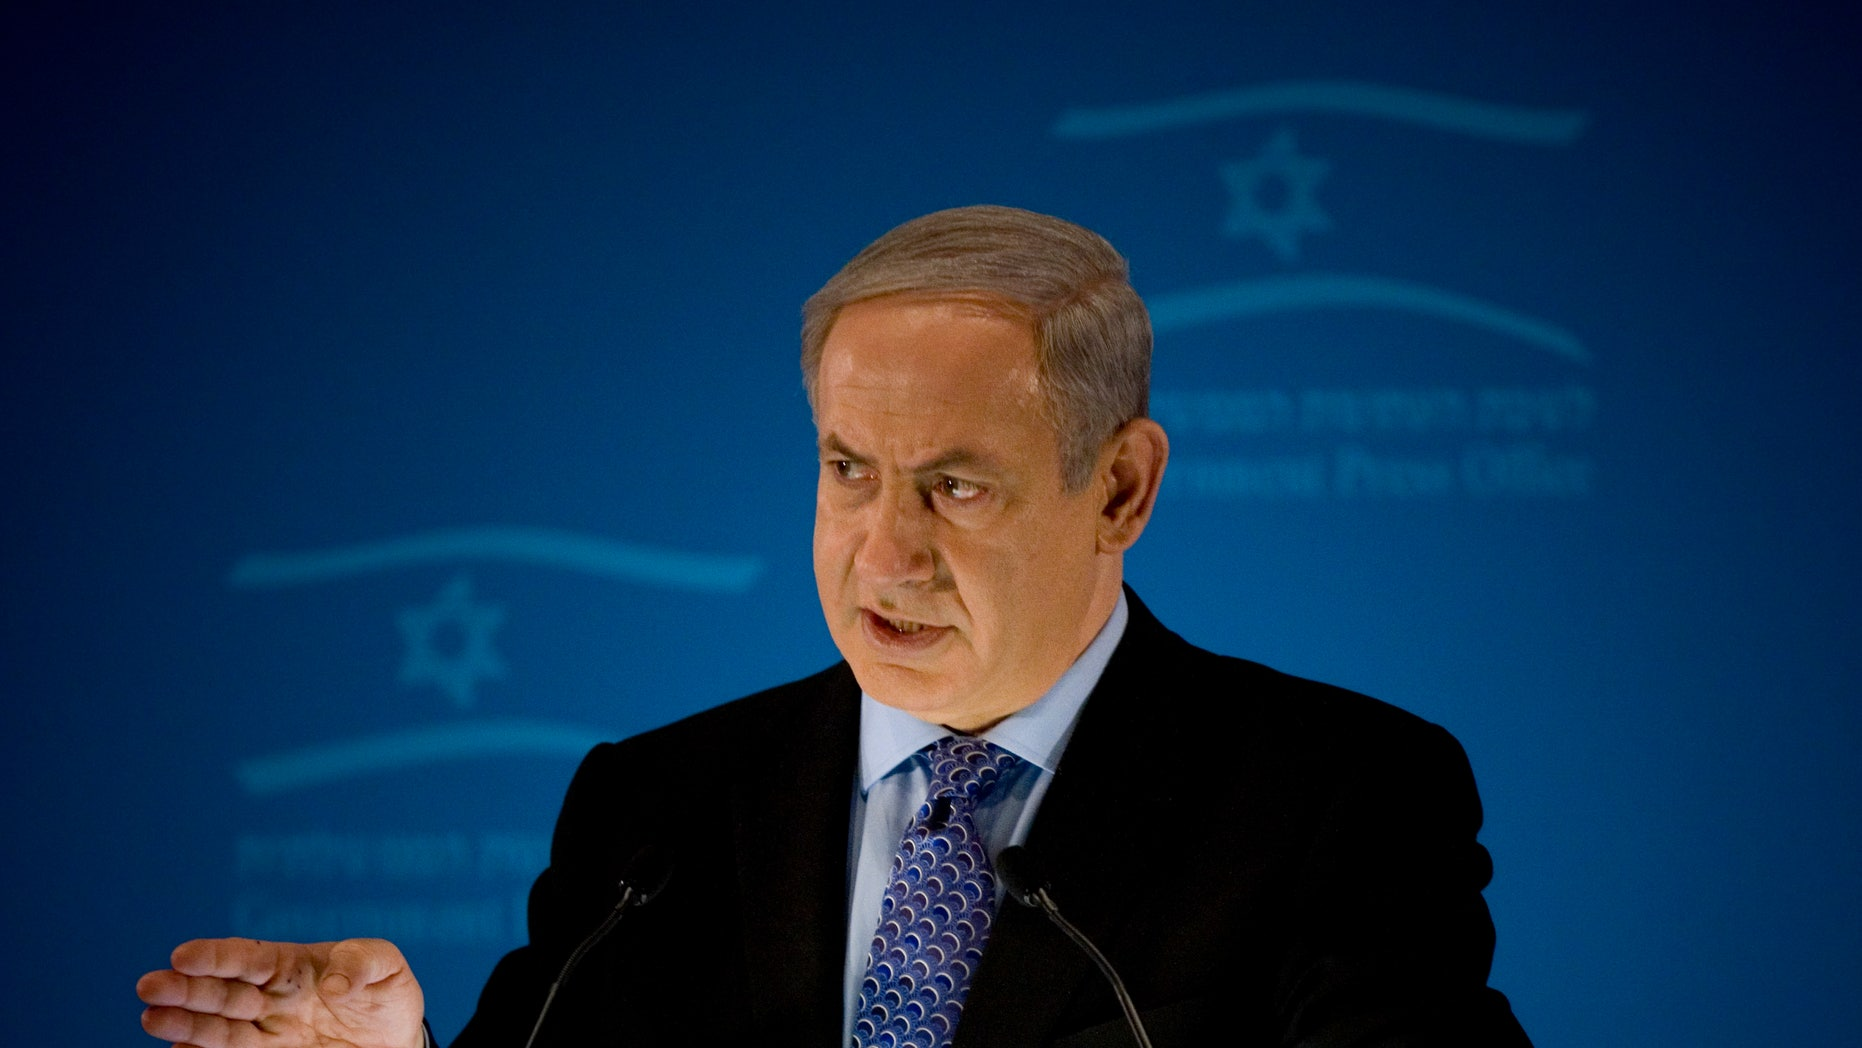 Jan. 11: Israeli Prime Minister Benjamin Netanyahu delivers a statement to members of the foreign press in Jerusalem. Netanyahu insists that Iran will not stop its nuclear program unless economic sanctions are backed with a 'credible military option.'